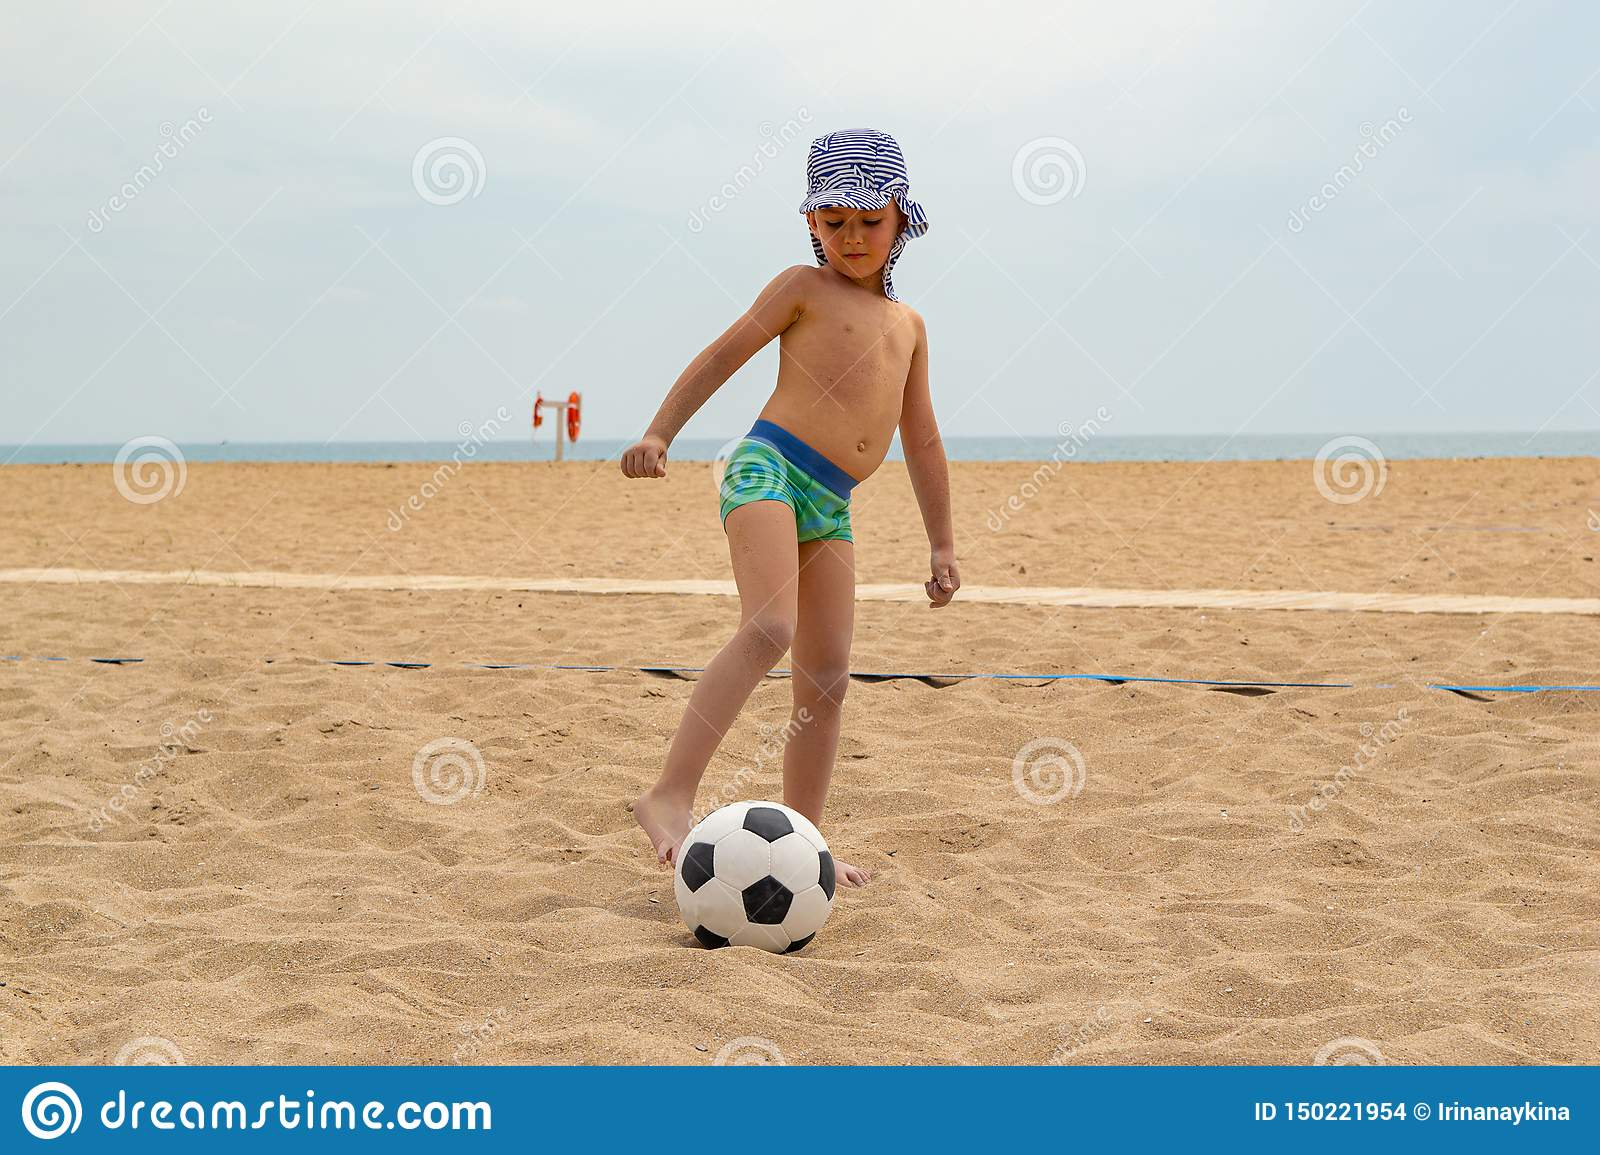 The child plays football on the beach